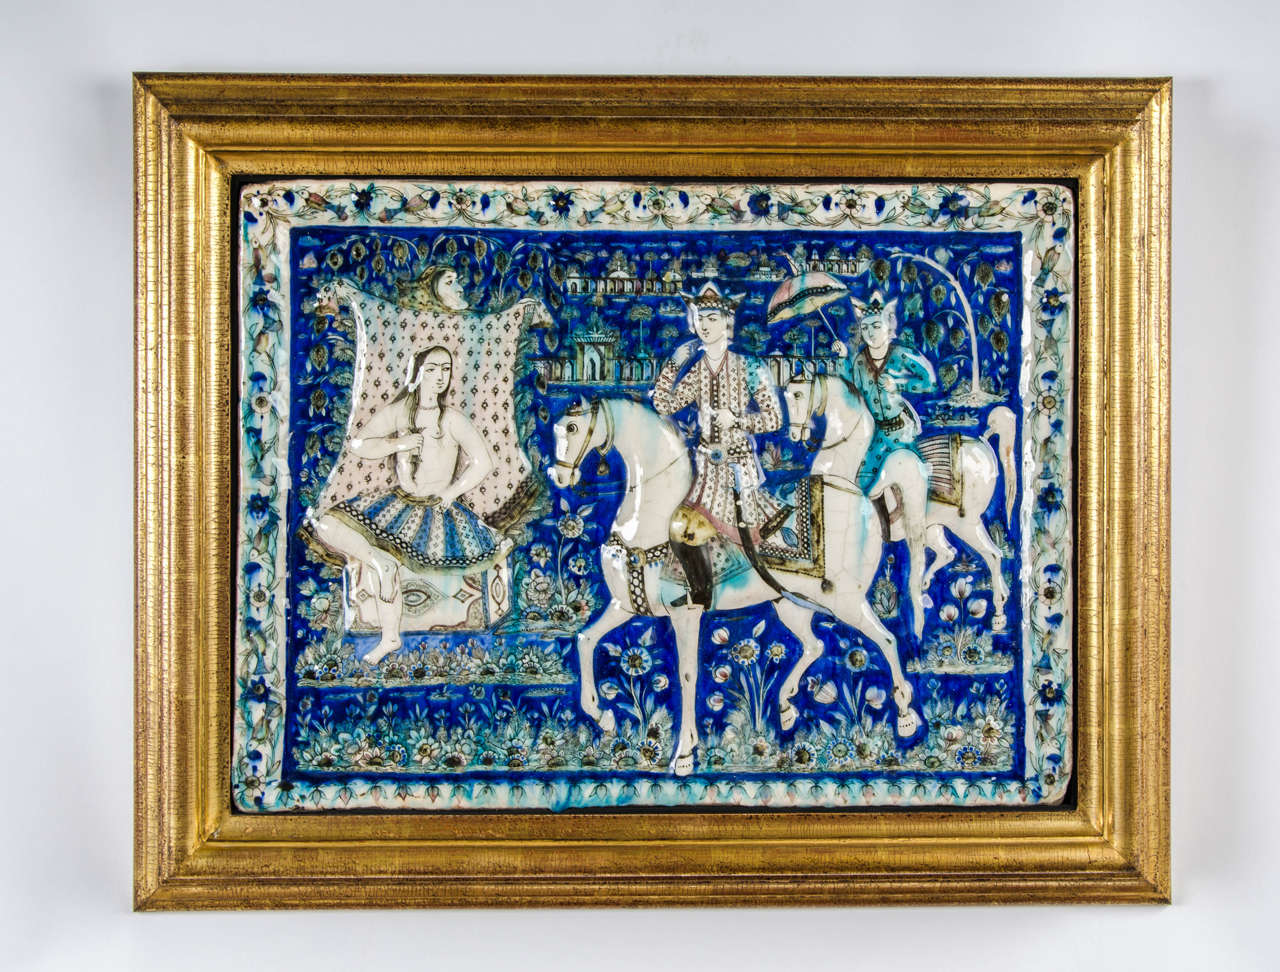 A large and splendid Qajar period tile depicting Khusrau, visiting Shirin; rectangular, moulded and decorated in polychrome depicting the famous moment in Person Literature of Shirin bathing in a pool as Khusrau gallops by with an attendant, the